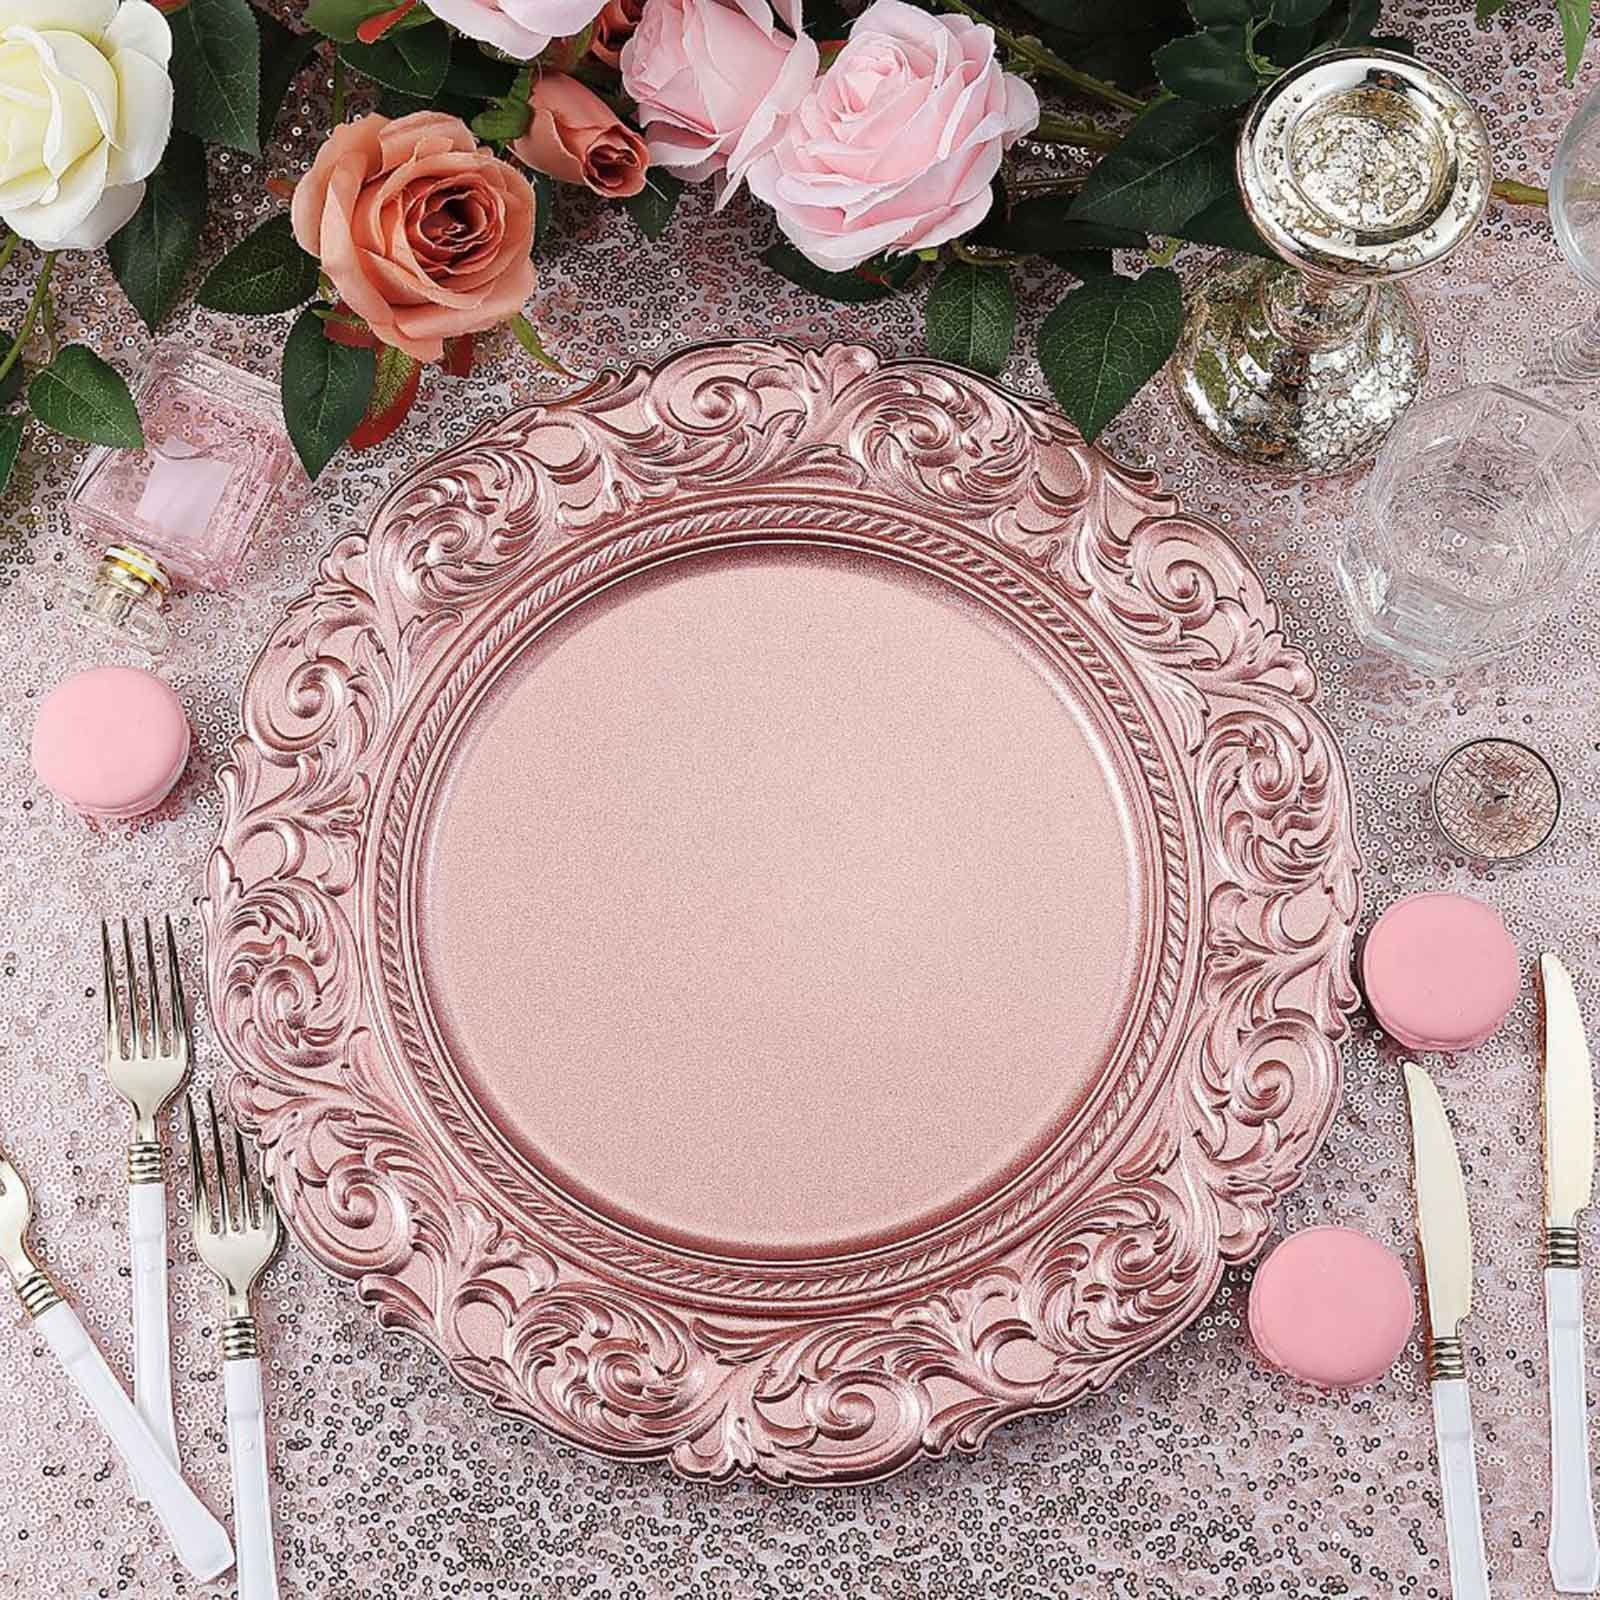 BalsaCircle 6 pcs 14-Inch Rose Gold Metallic Round Baroque Plastic Charger Plates Wedding Reception Discounted Decorations Supplies